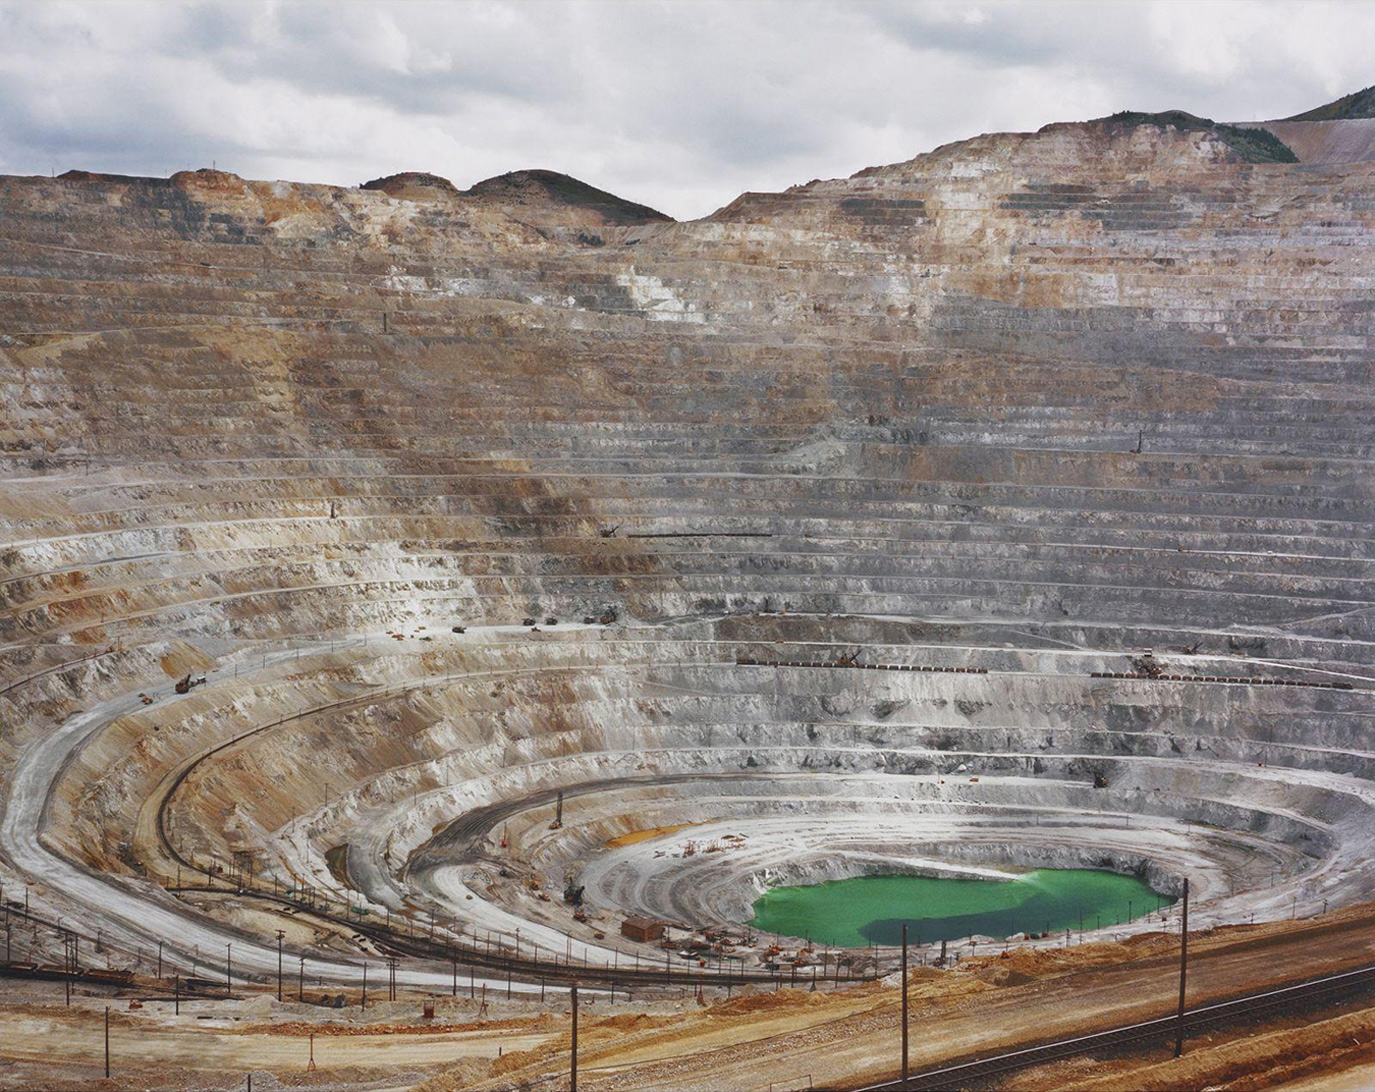 bingham canyon hispanic single men Kennecott utah copper's bingham canyon mine is back in full production after an  tions in a single test biomerieux,  services and i run into a hispanic.